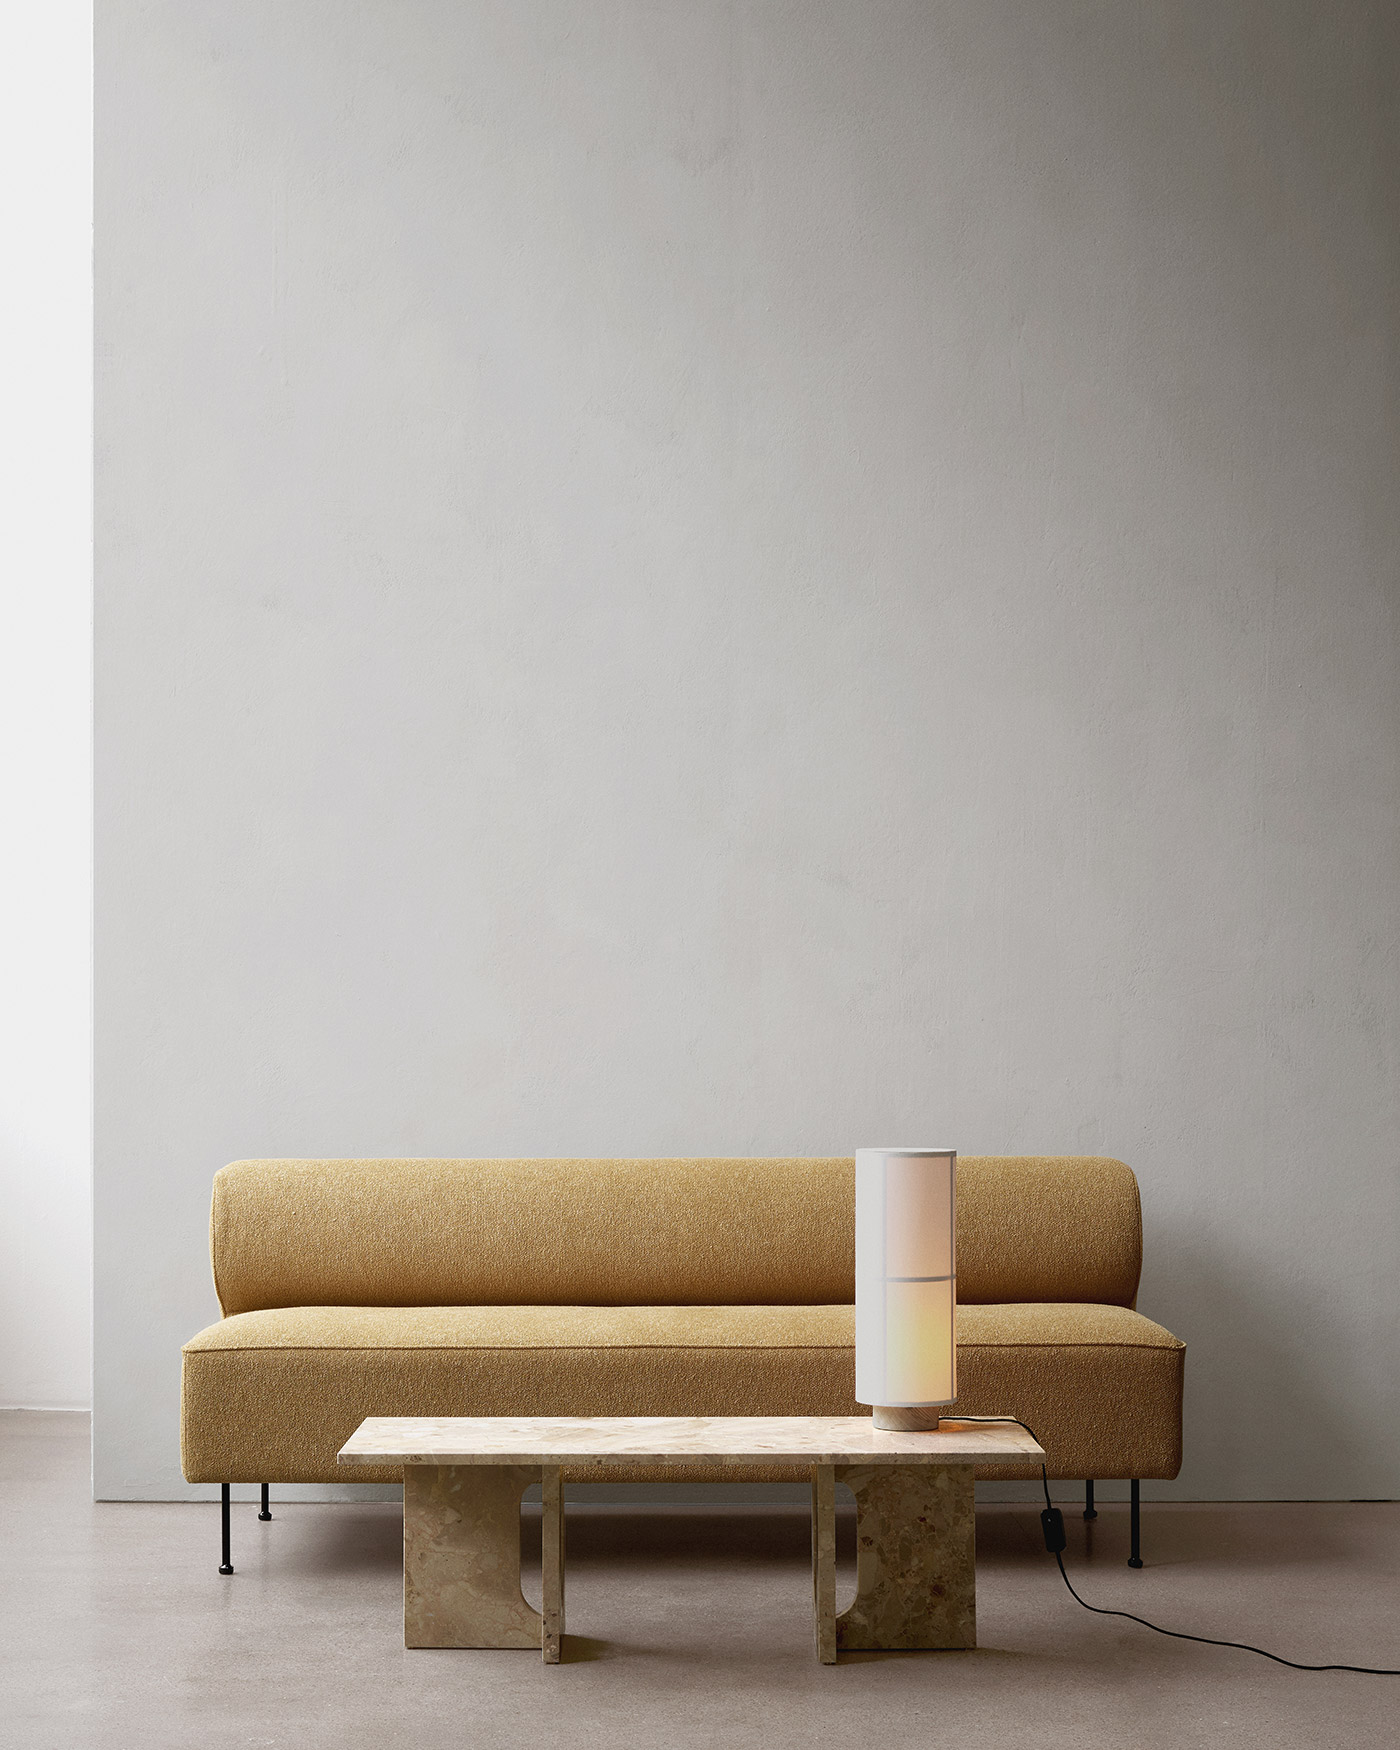 Modern minimal sofa against grey wall